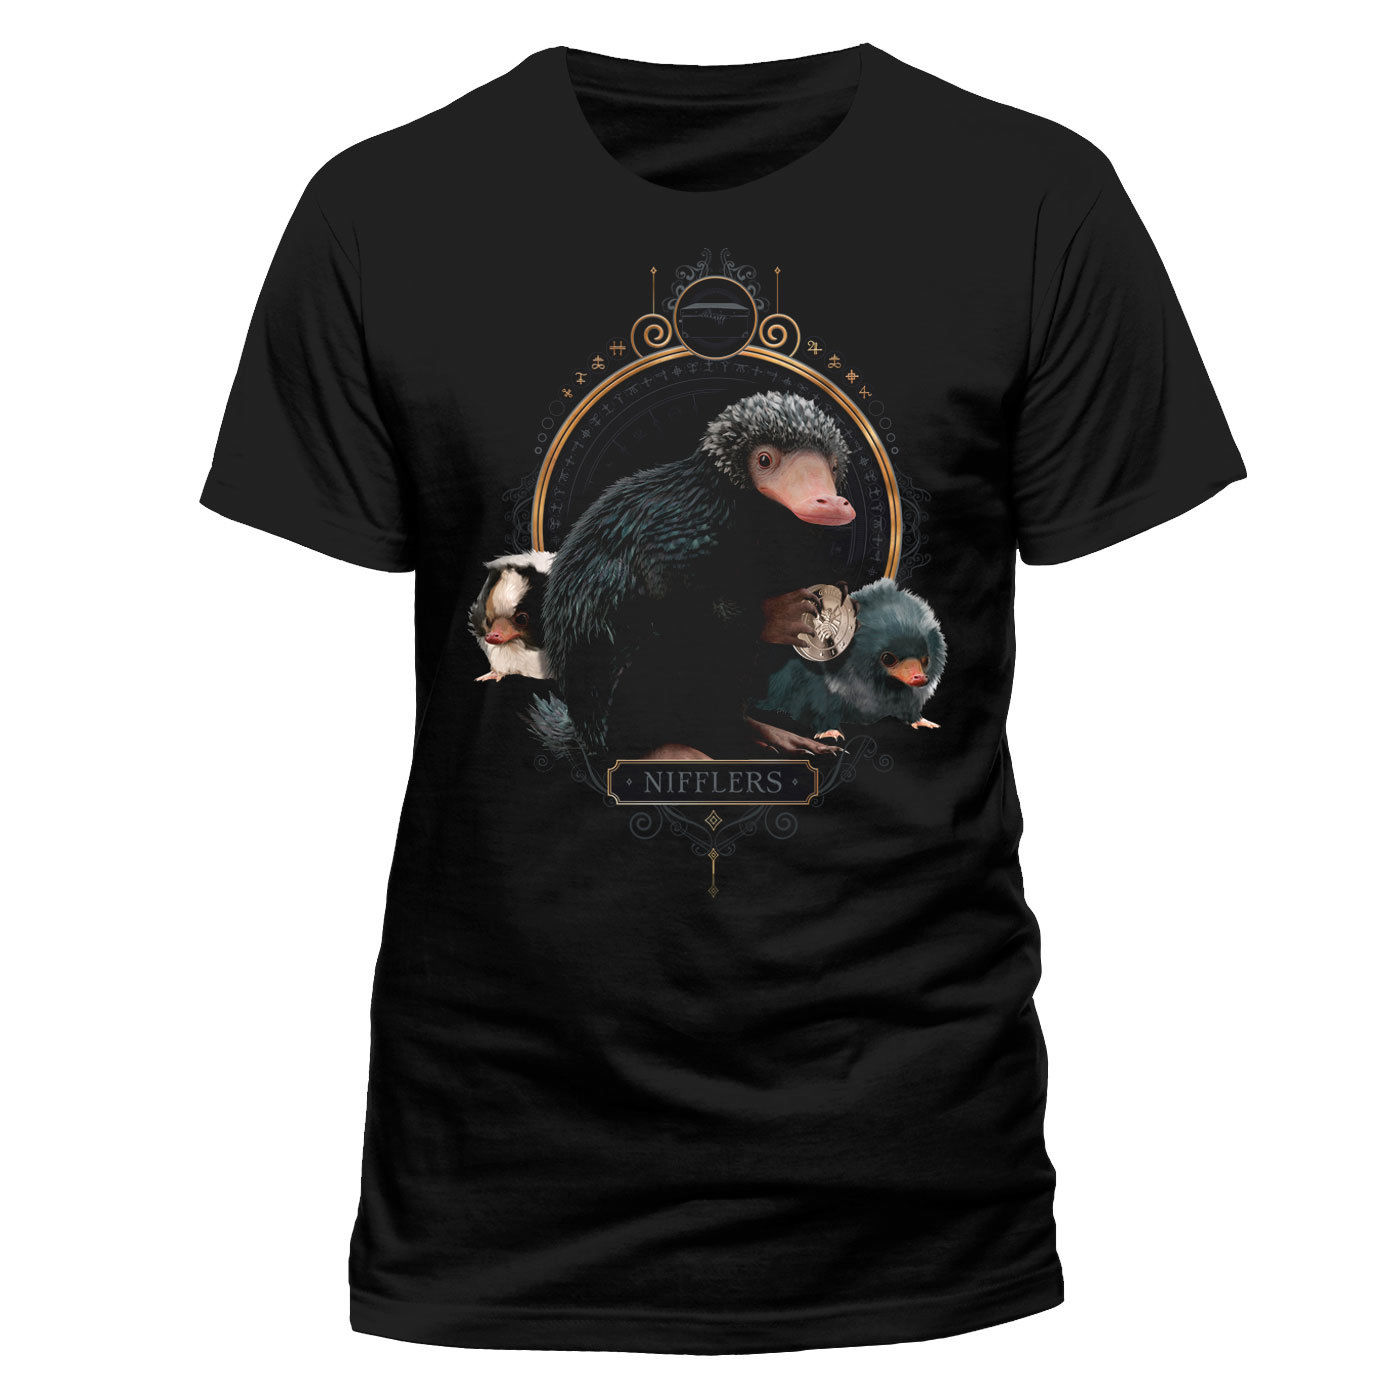 OFFICIAL FANTASTIC BEASTS - CRIMES OF GRINDELWALD - NIFFLERS BLACK   T  -  SHIRT   (NEW) Comfortable   t     shirt  ,Casual Short Sleeve TEE